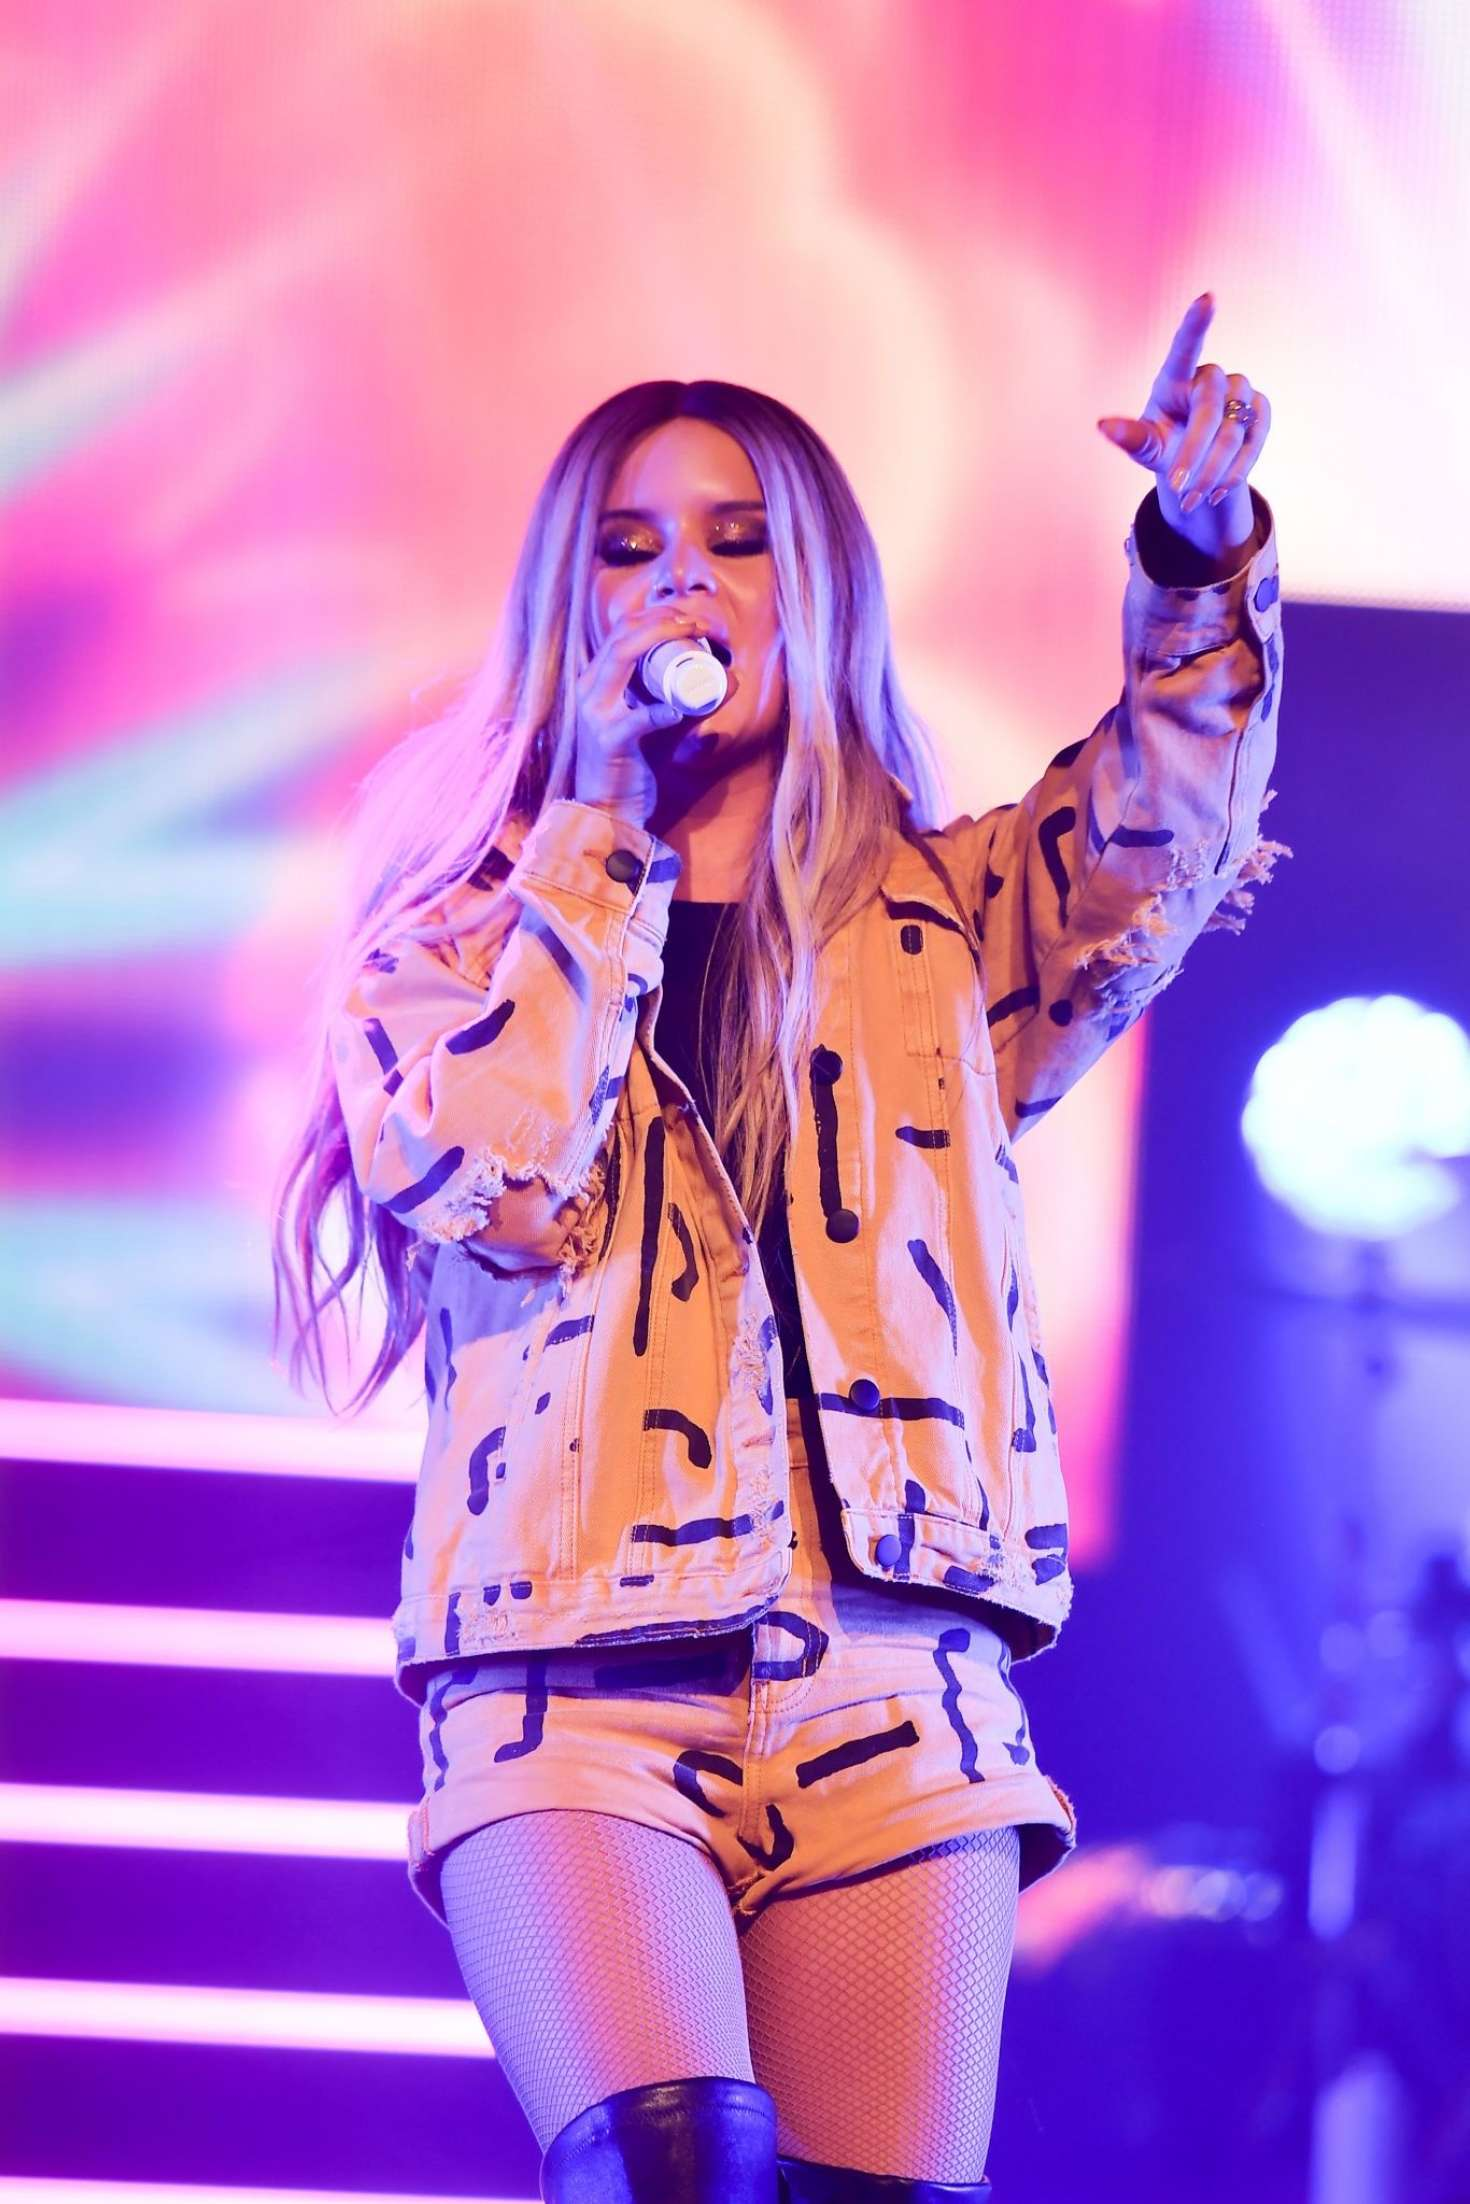 Maren Morris - Performing at The Wiltern in LA